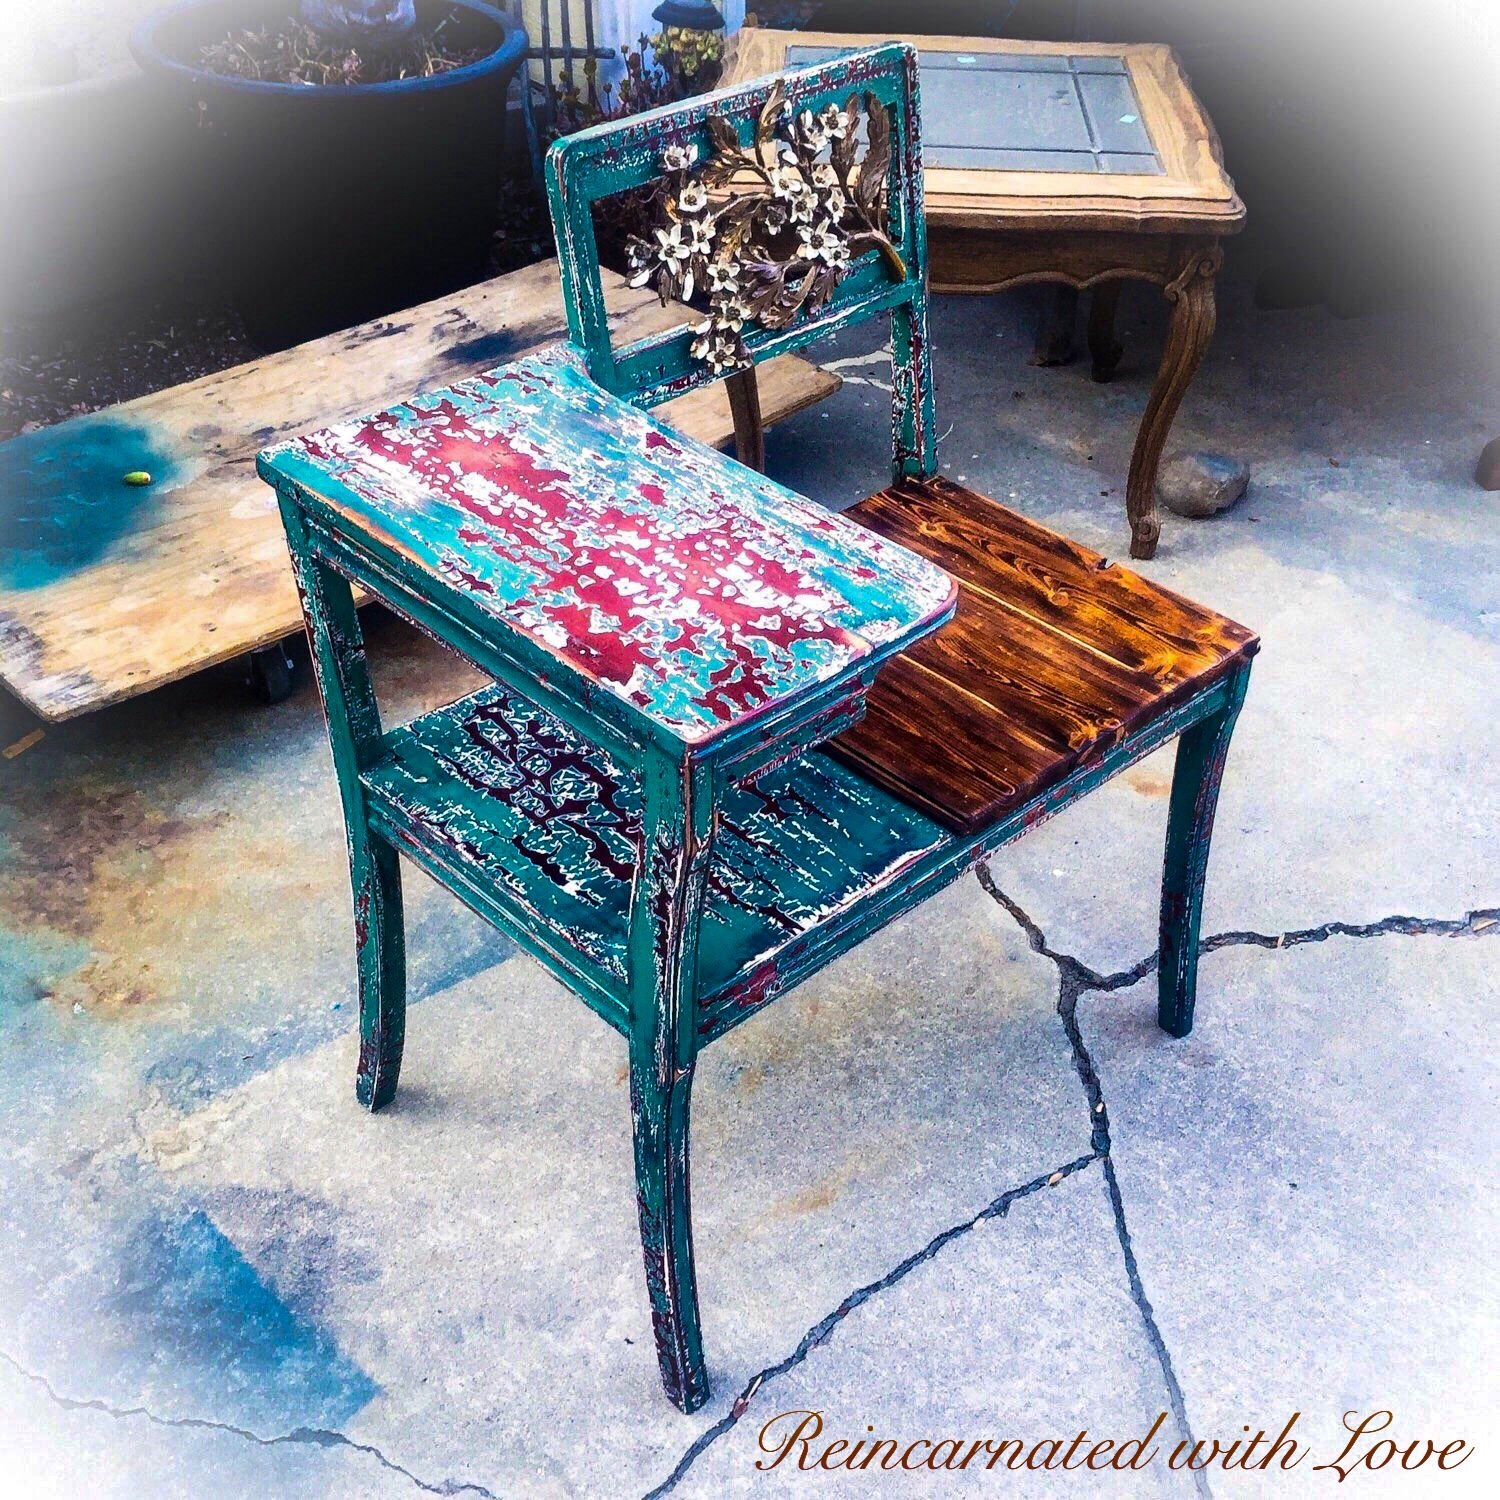 Antique gossip bench from reincarnated with love